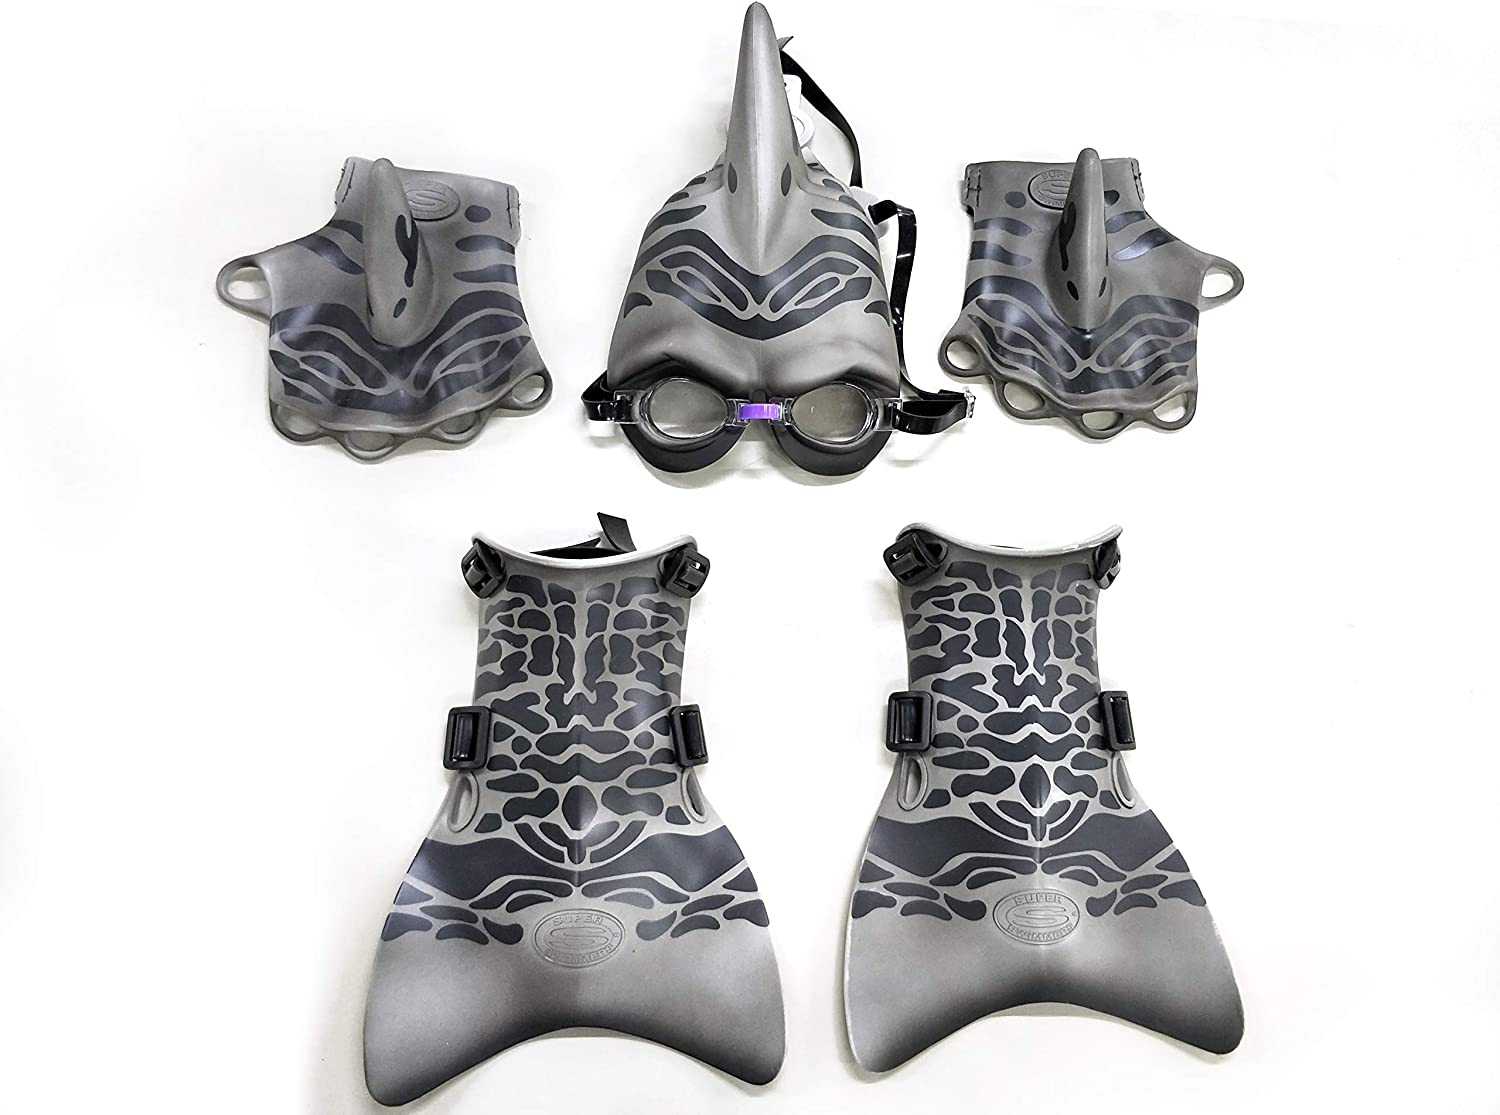 Big Time SHARKMAN Super Swimmer Dress UP Swim Gear -Mask with Dorsal Fin Underwater Goggles Flippers Web Gloves! Perfect for Shark Week!!